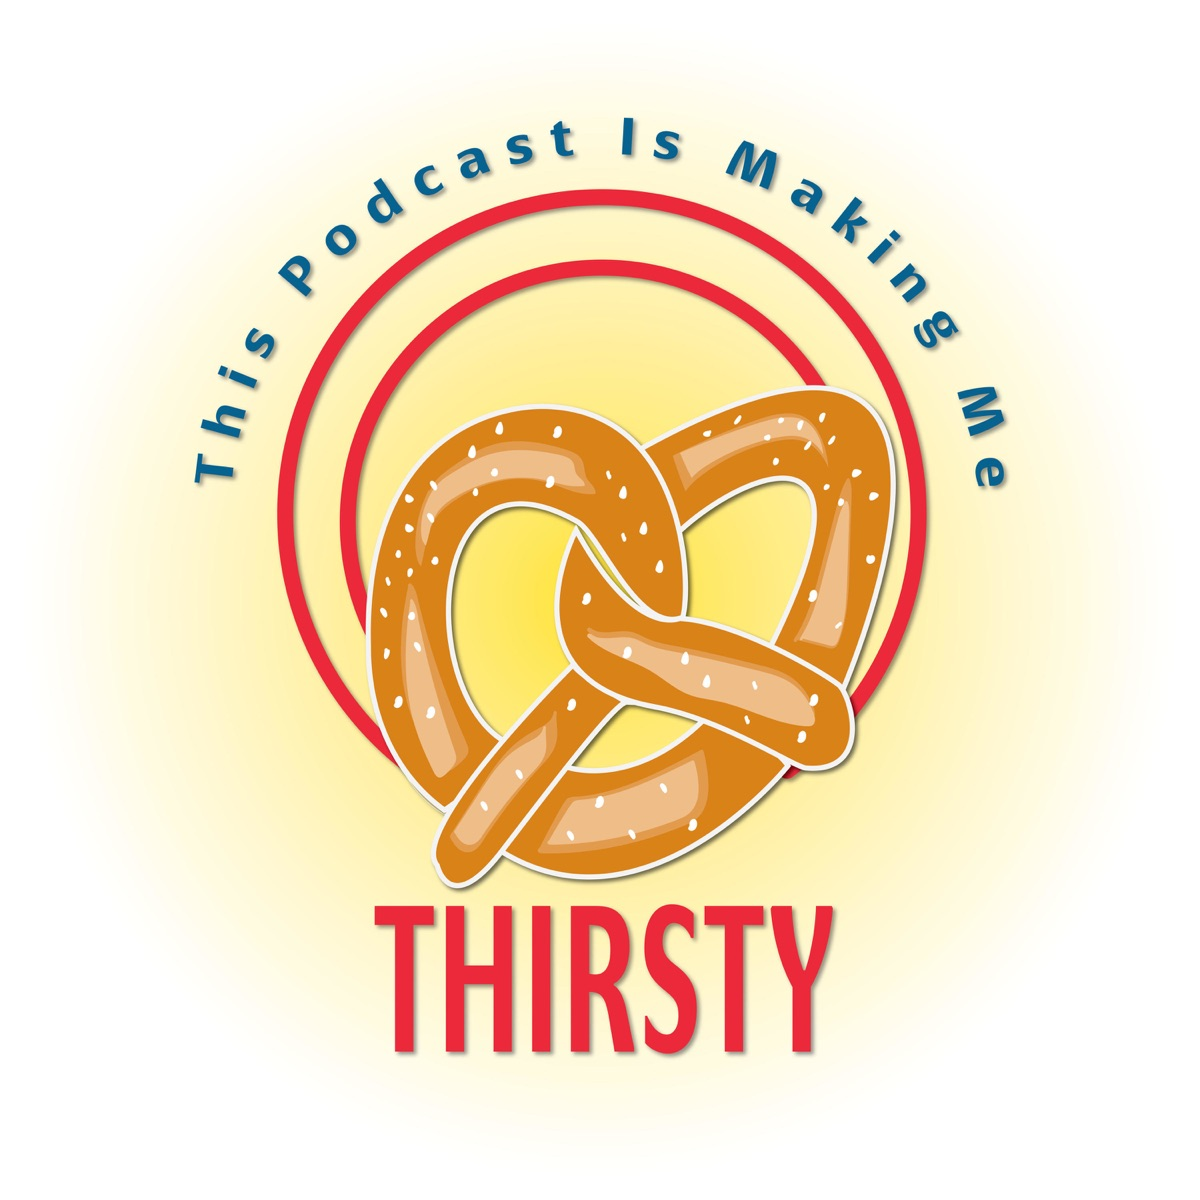 This Podcast is Making Me Thirsty